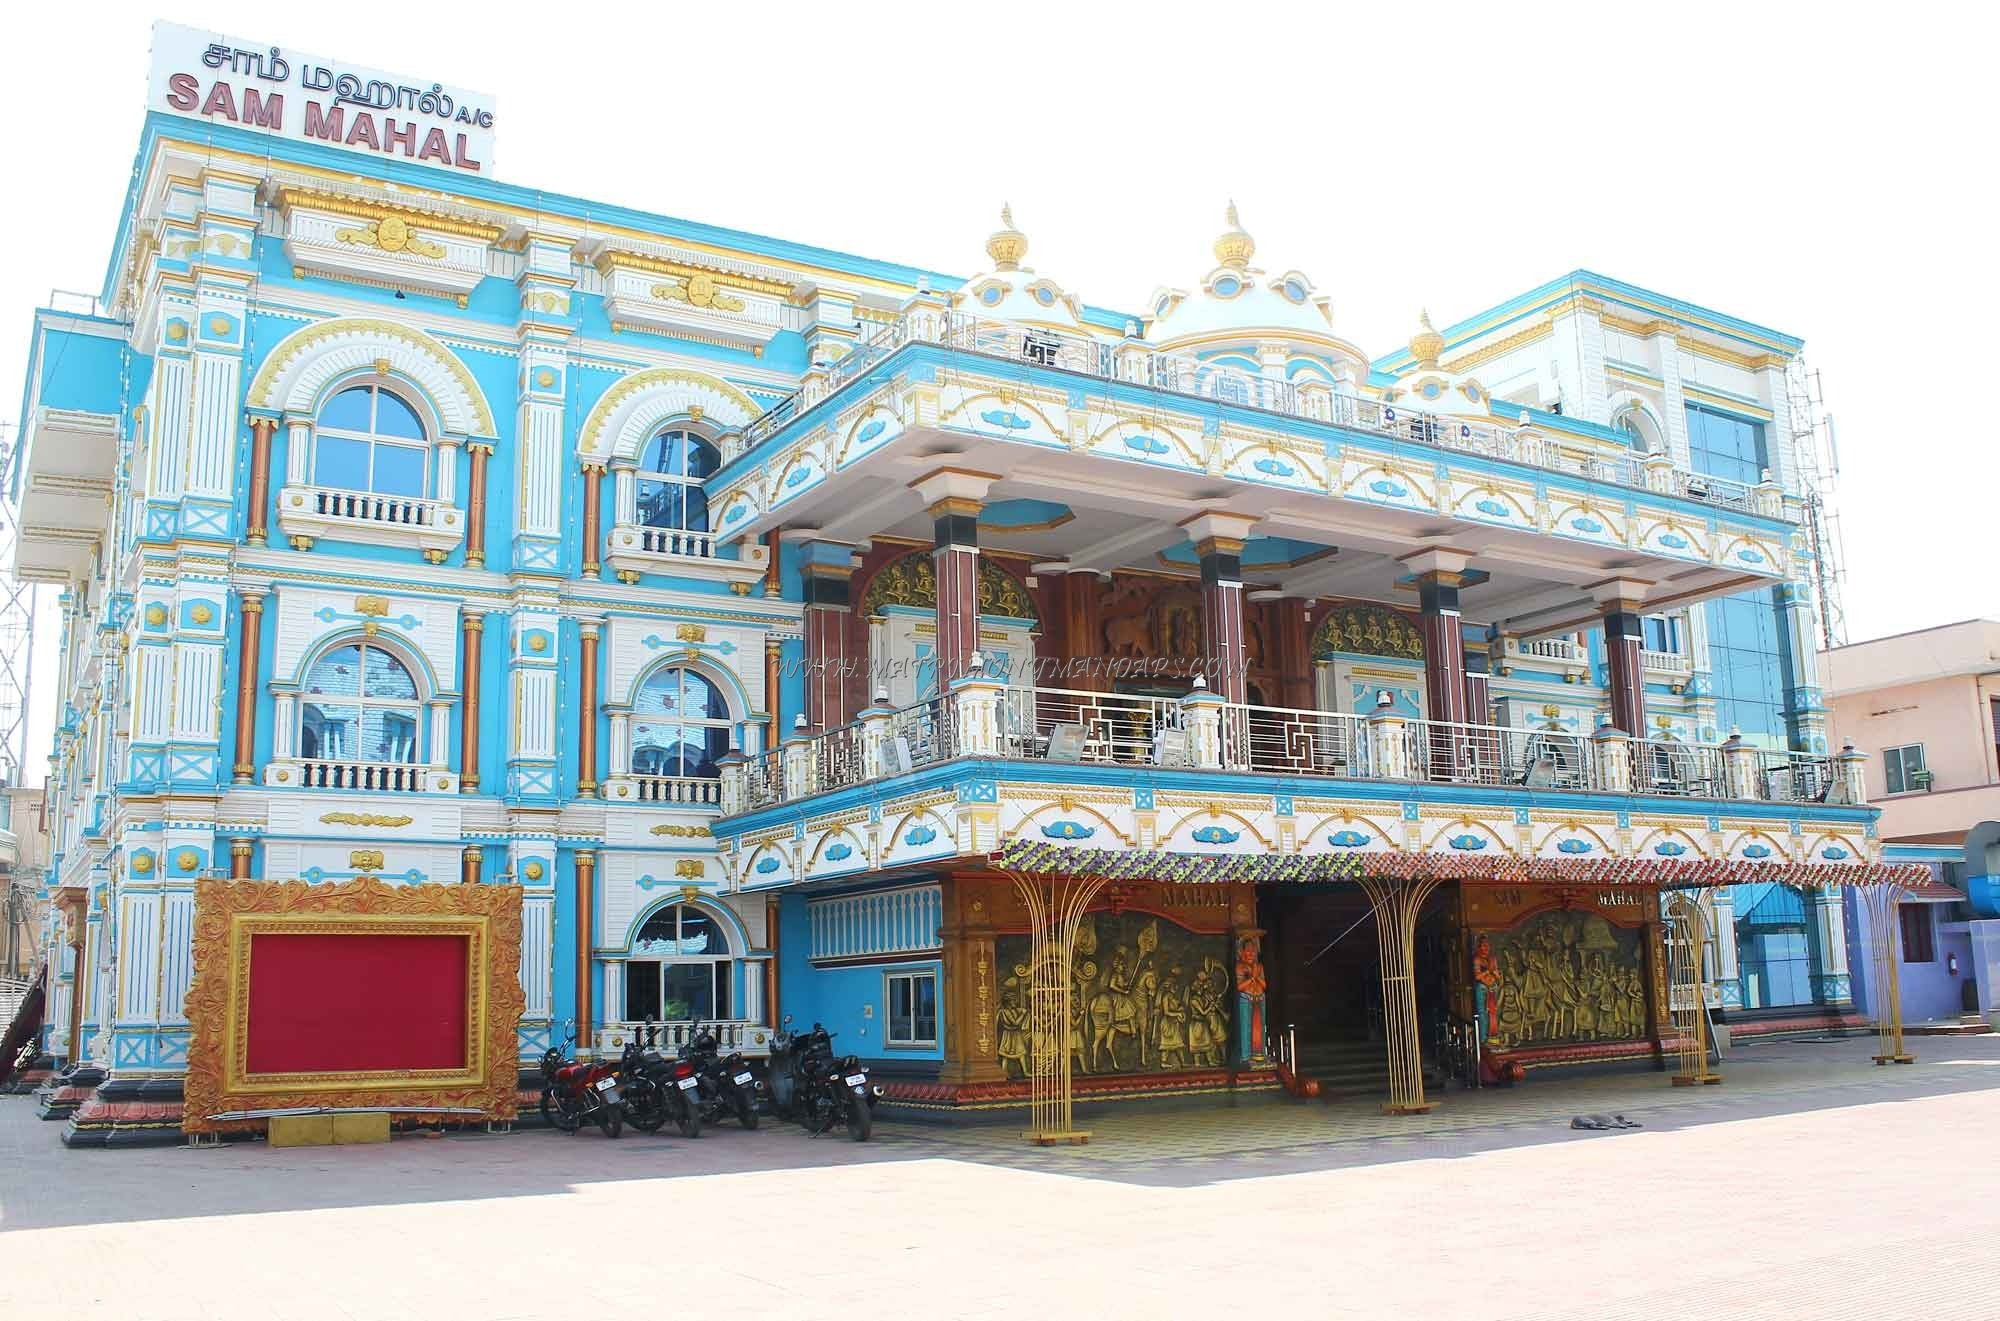 Find More Kalyana Mandapams in Ambattur